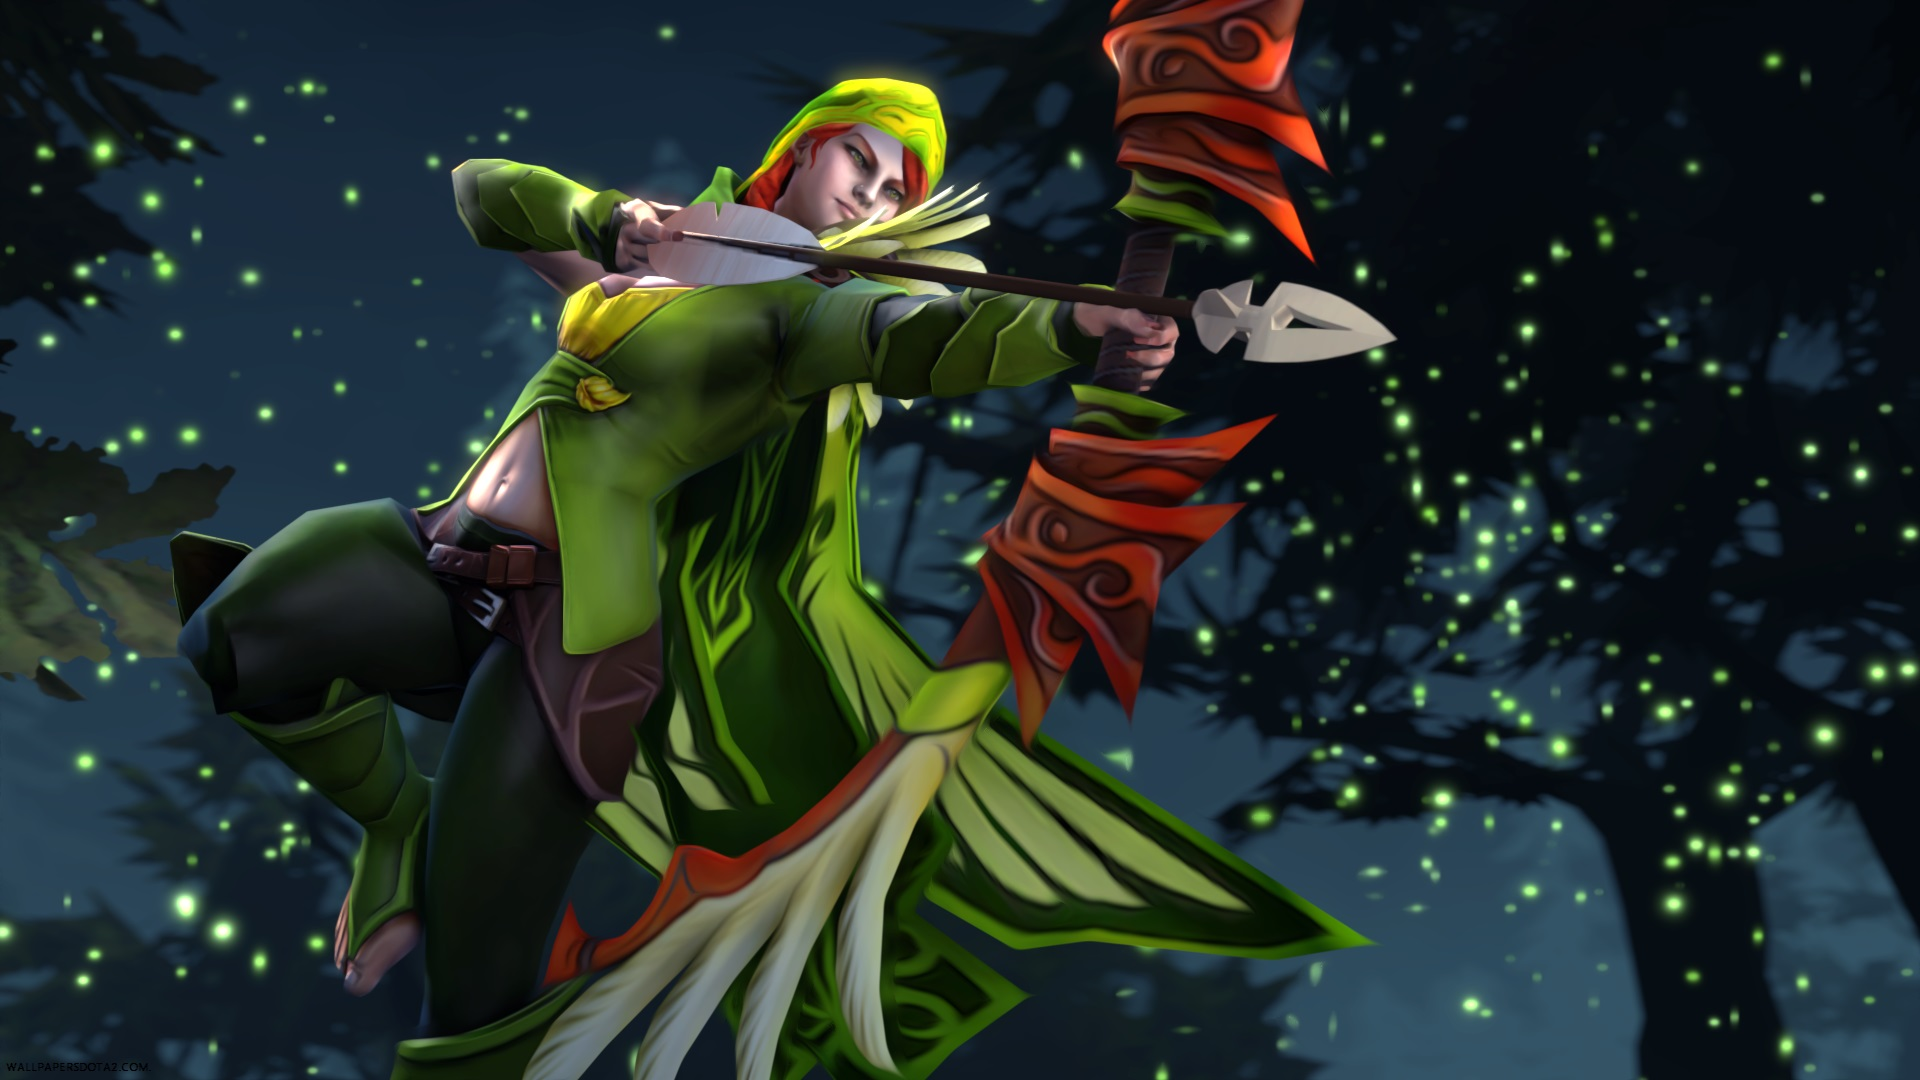 Windrunner desktop computer wallpapers Dota 2